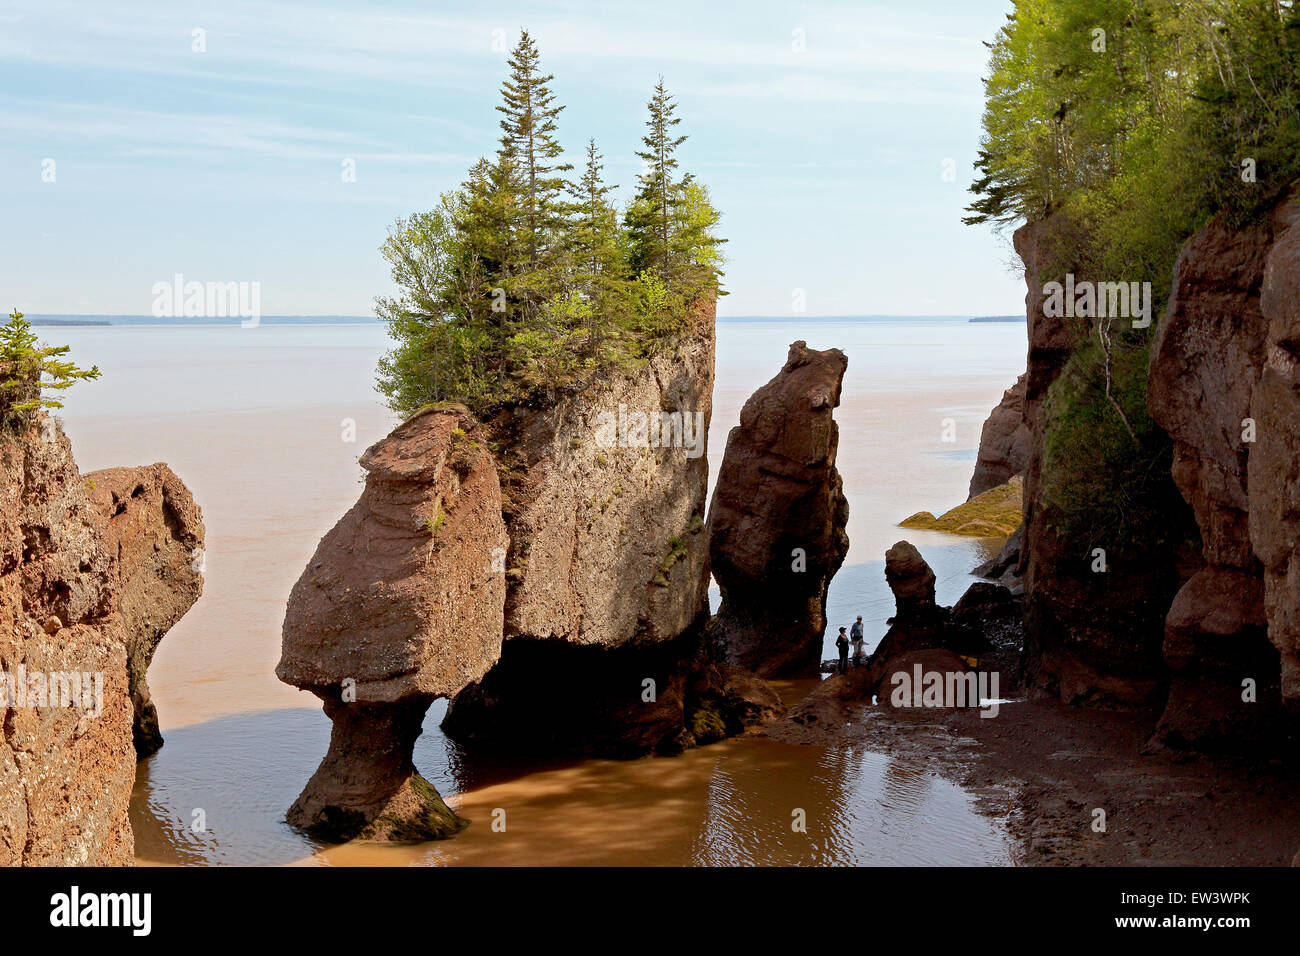 Bay of Fundy, New Brunswick, Canada Hopewell Rocks beach at low tide with tourists walking beach. - Stock Image